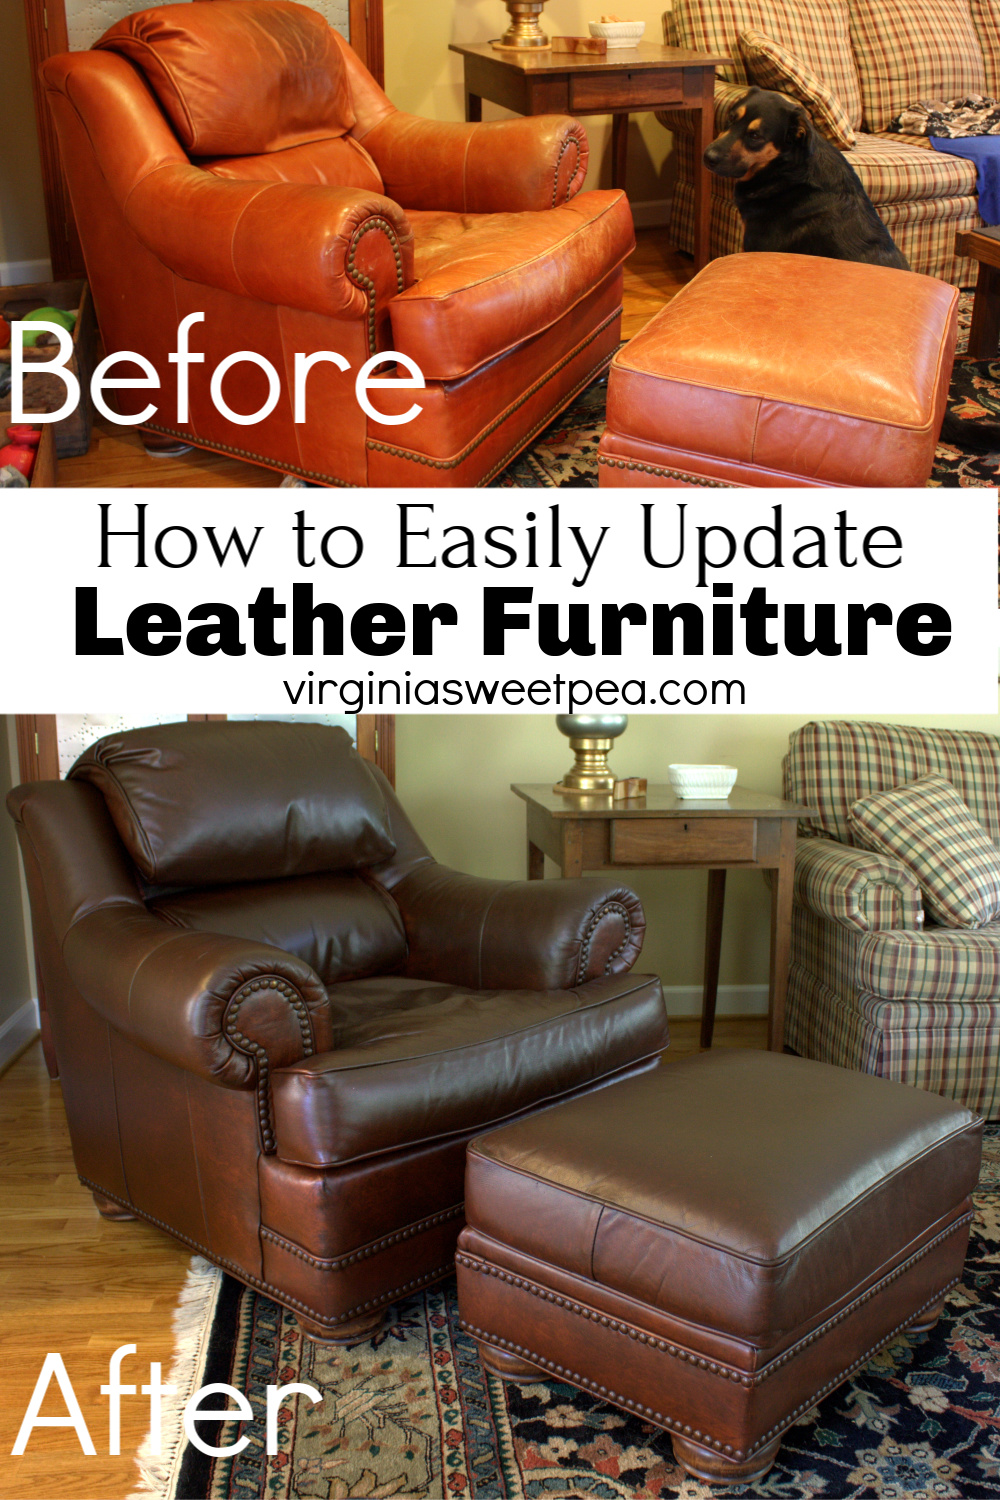 How to Easily Update Leather Furniture - Did you know that you can change the color of leather furniture?  See how our leather chair and ottoman went from an orange-red color to a beautiful chestnut brown.  #leatherfurnituremakeover #furnituremakeover  via @spaula